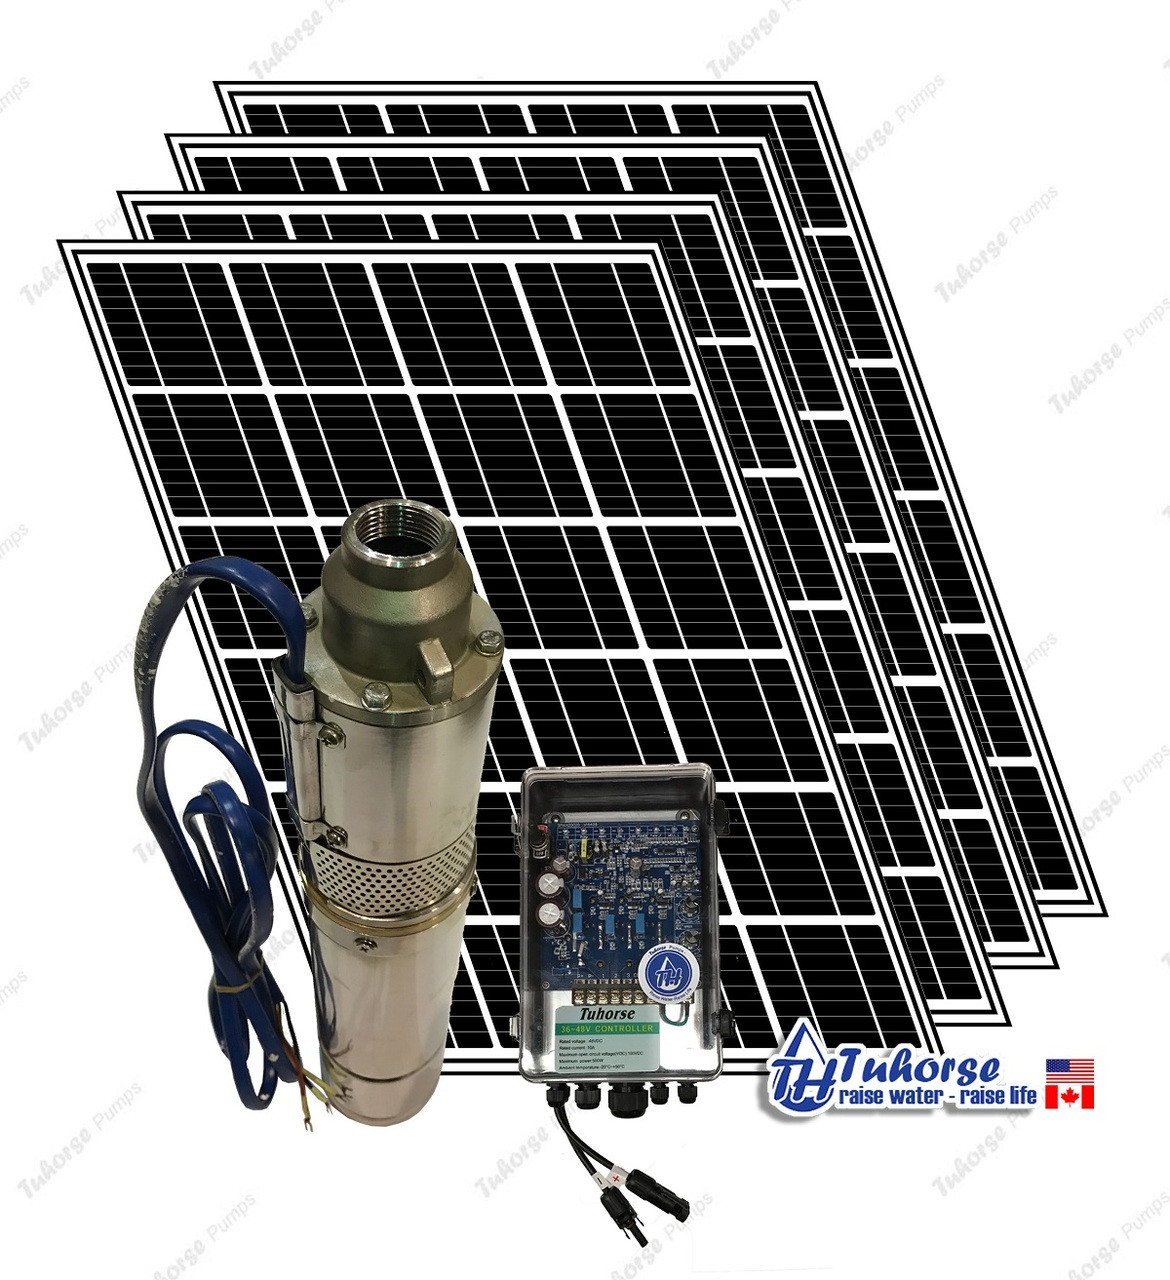 3hp submersible pump price in bangalore dating 6